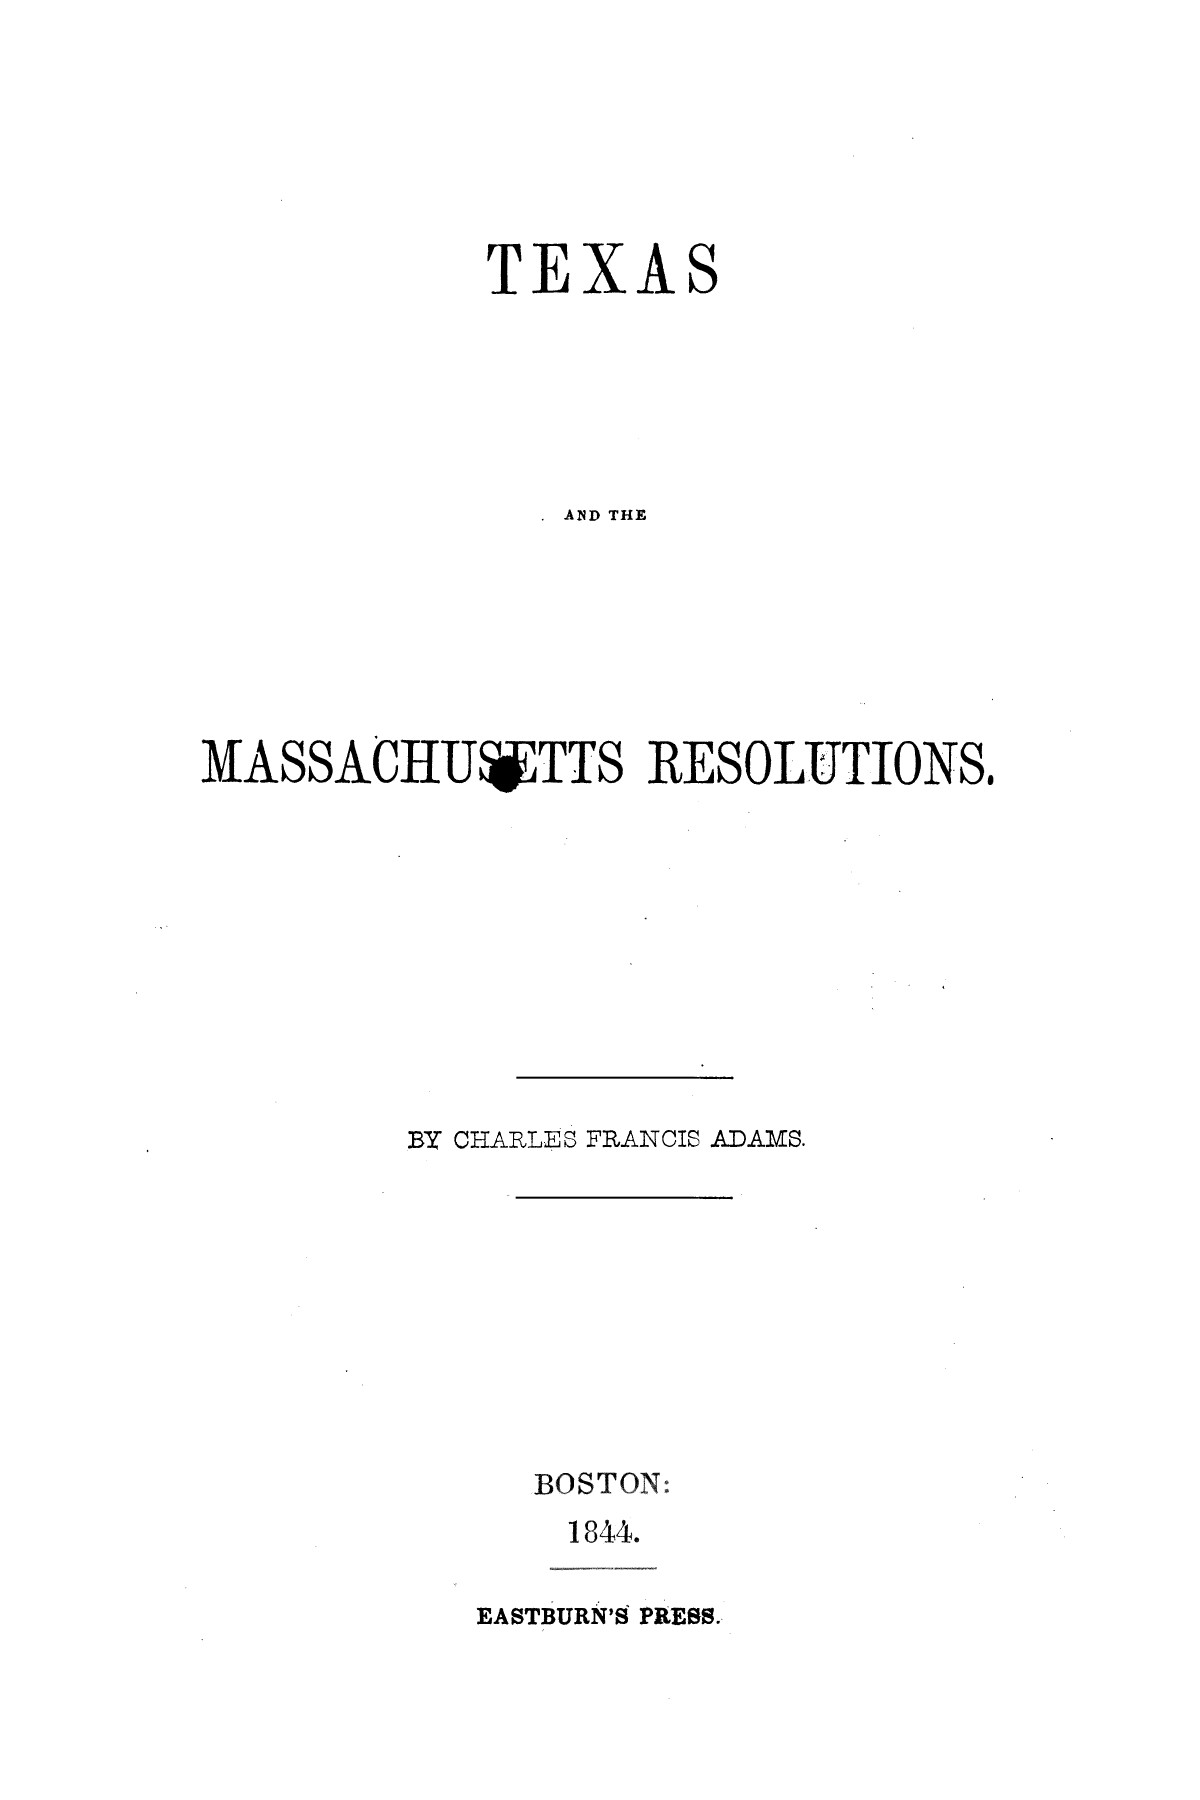 Texas and the Massachusetts Resolutions                                                                                                      [Sequence #]: 1 of 54